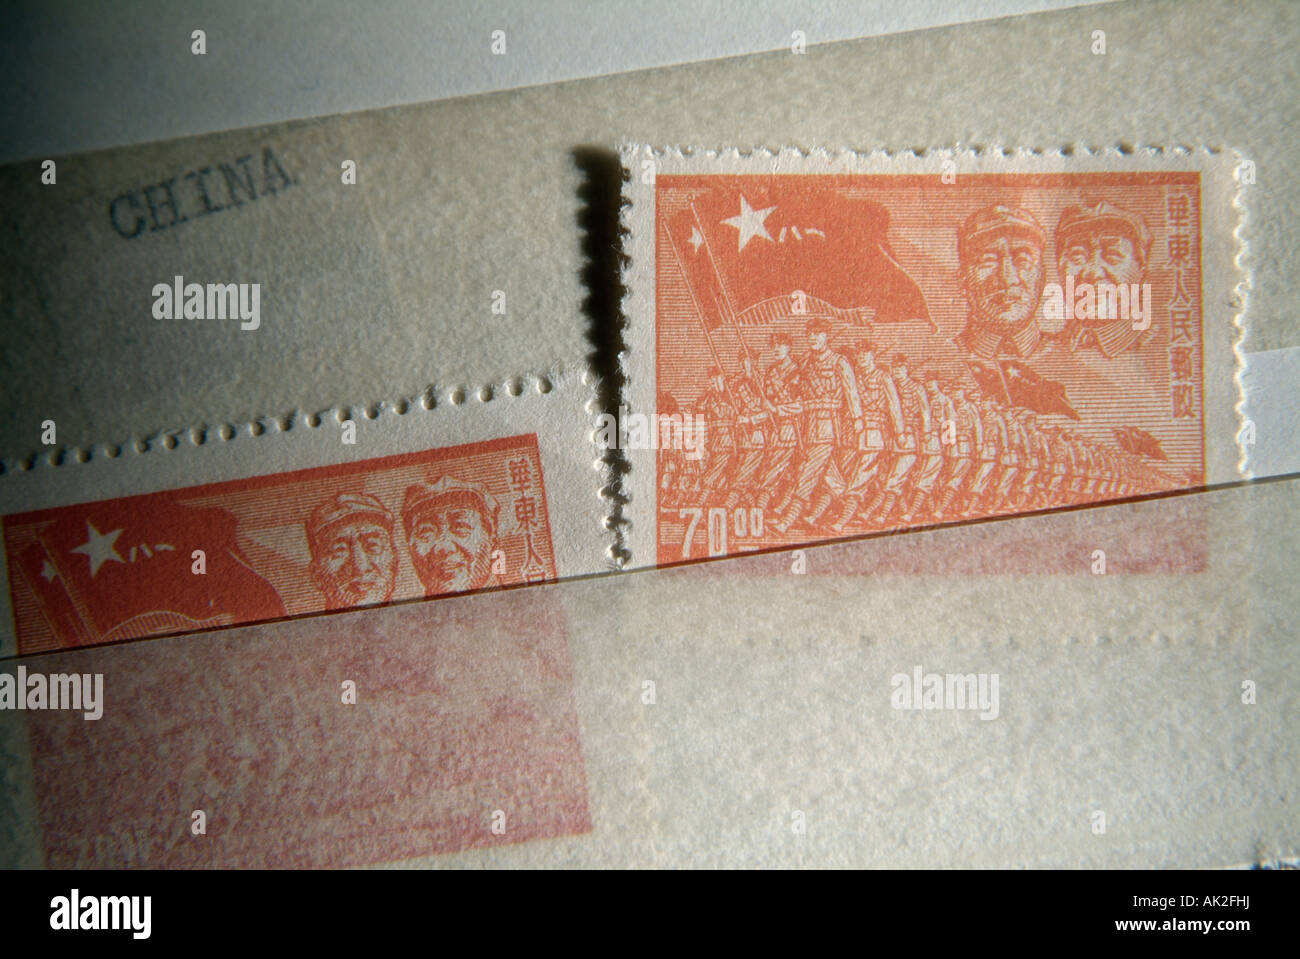 Collection of postage stamps from China - Stock Image